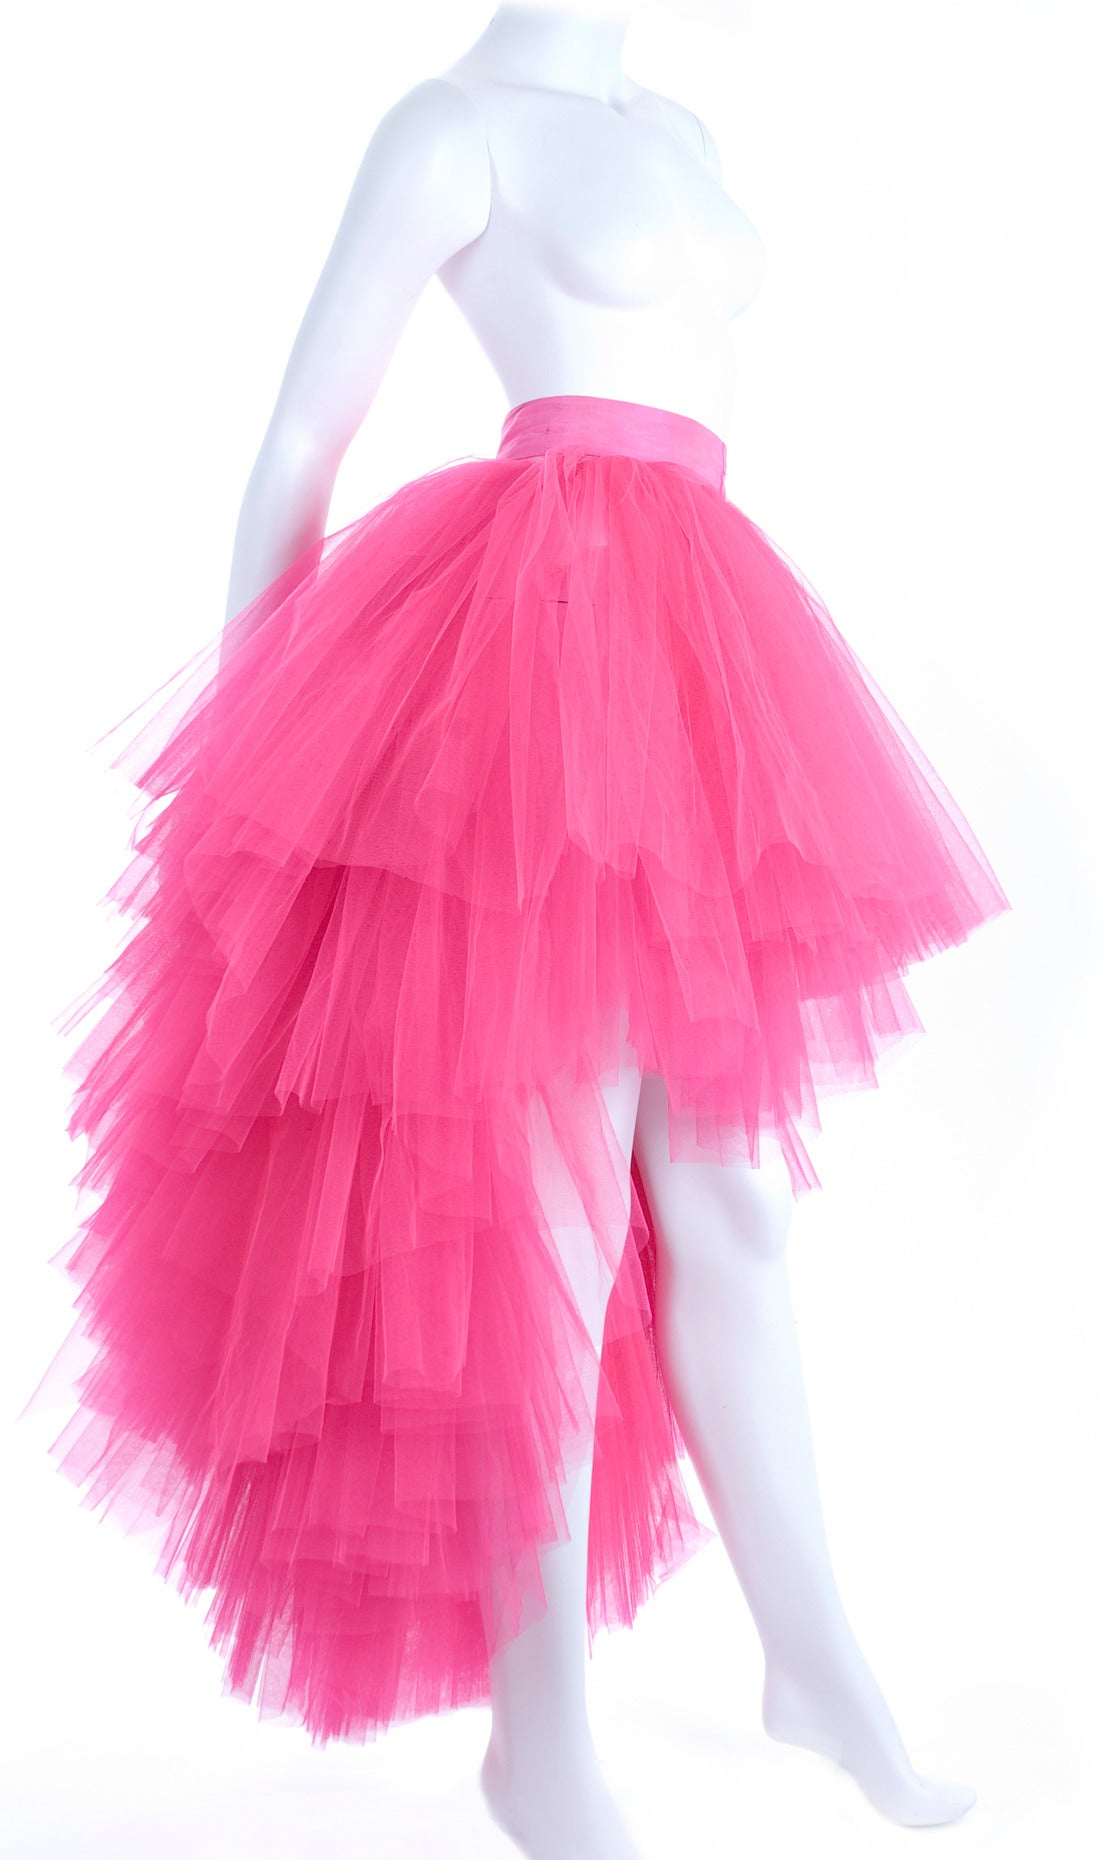 All About Eve Couture by Talbot Runhof Tulle Skirt 3